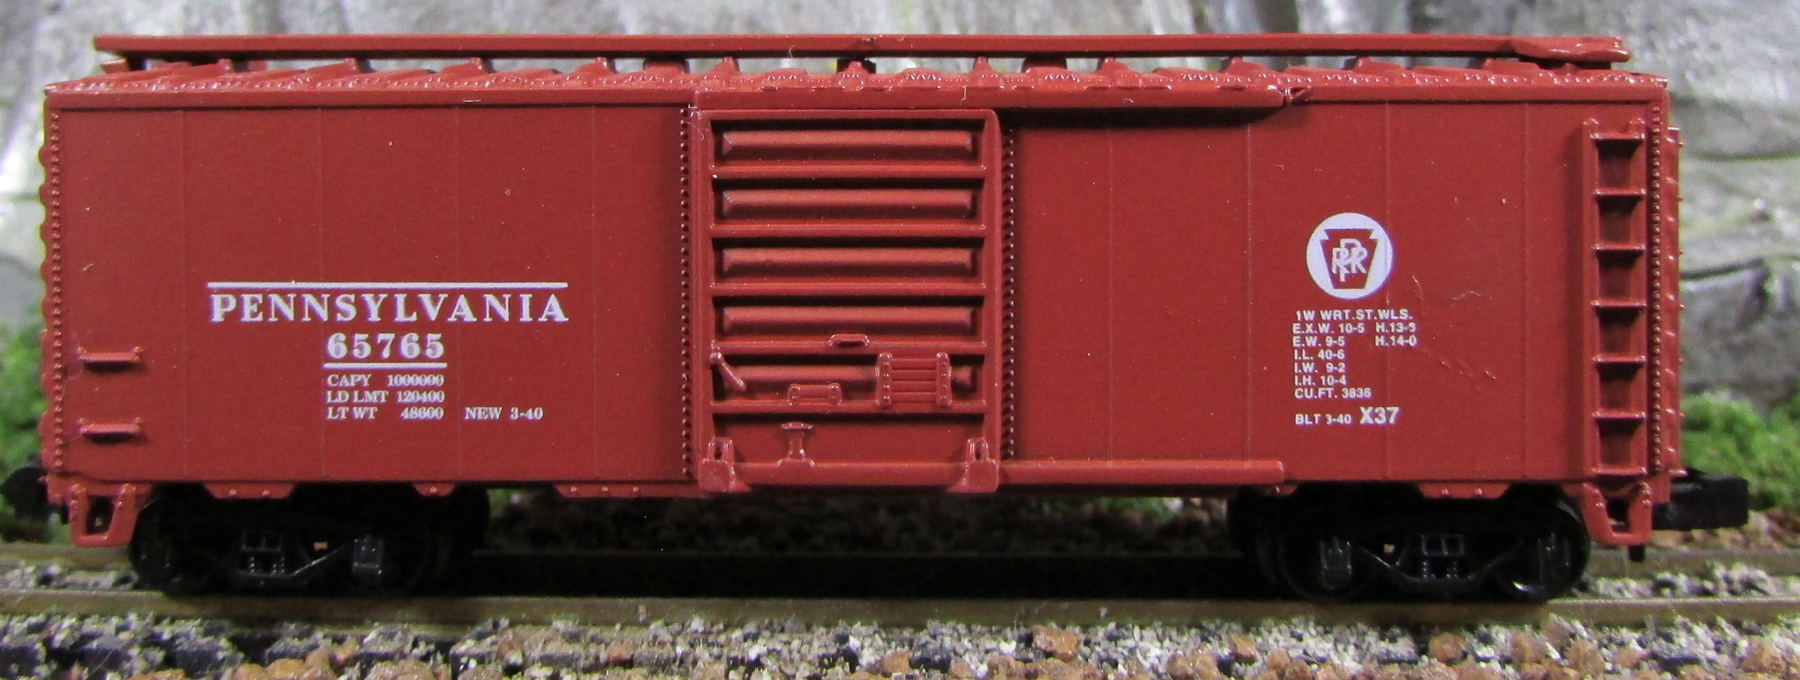 N Scale - Third Rail Graphics - 139-1 - Boxcar, 40 Foot, PS-1 - Pennsylvania - 65765